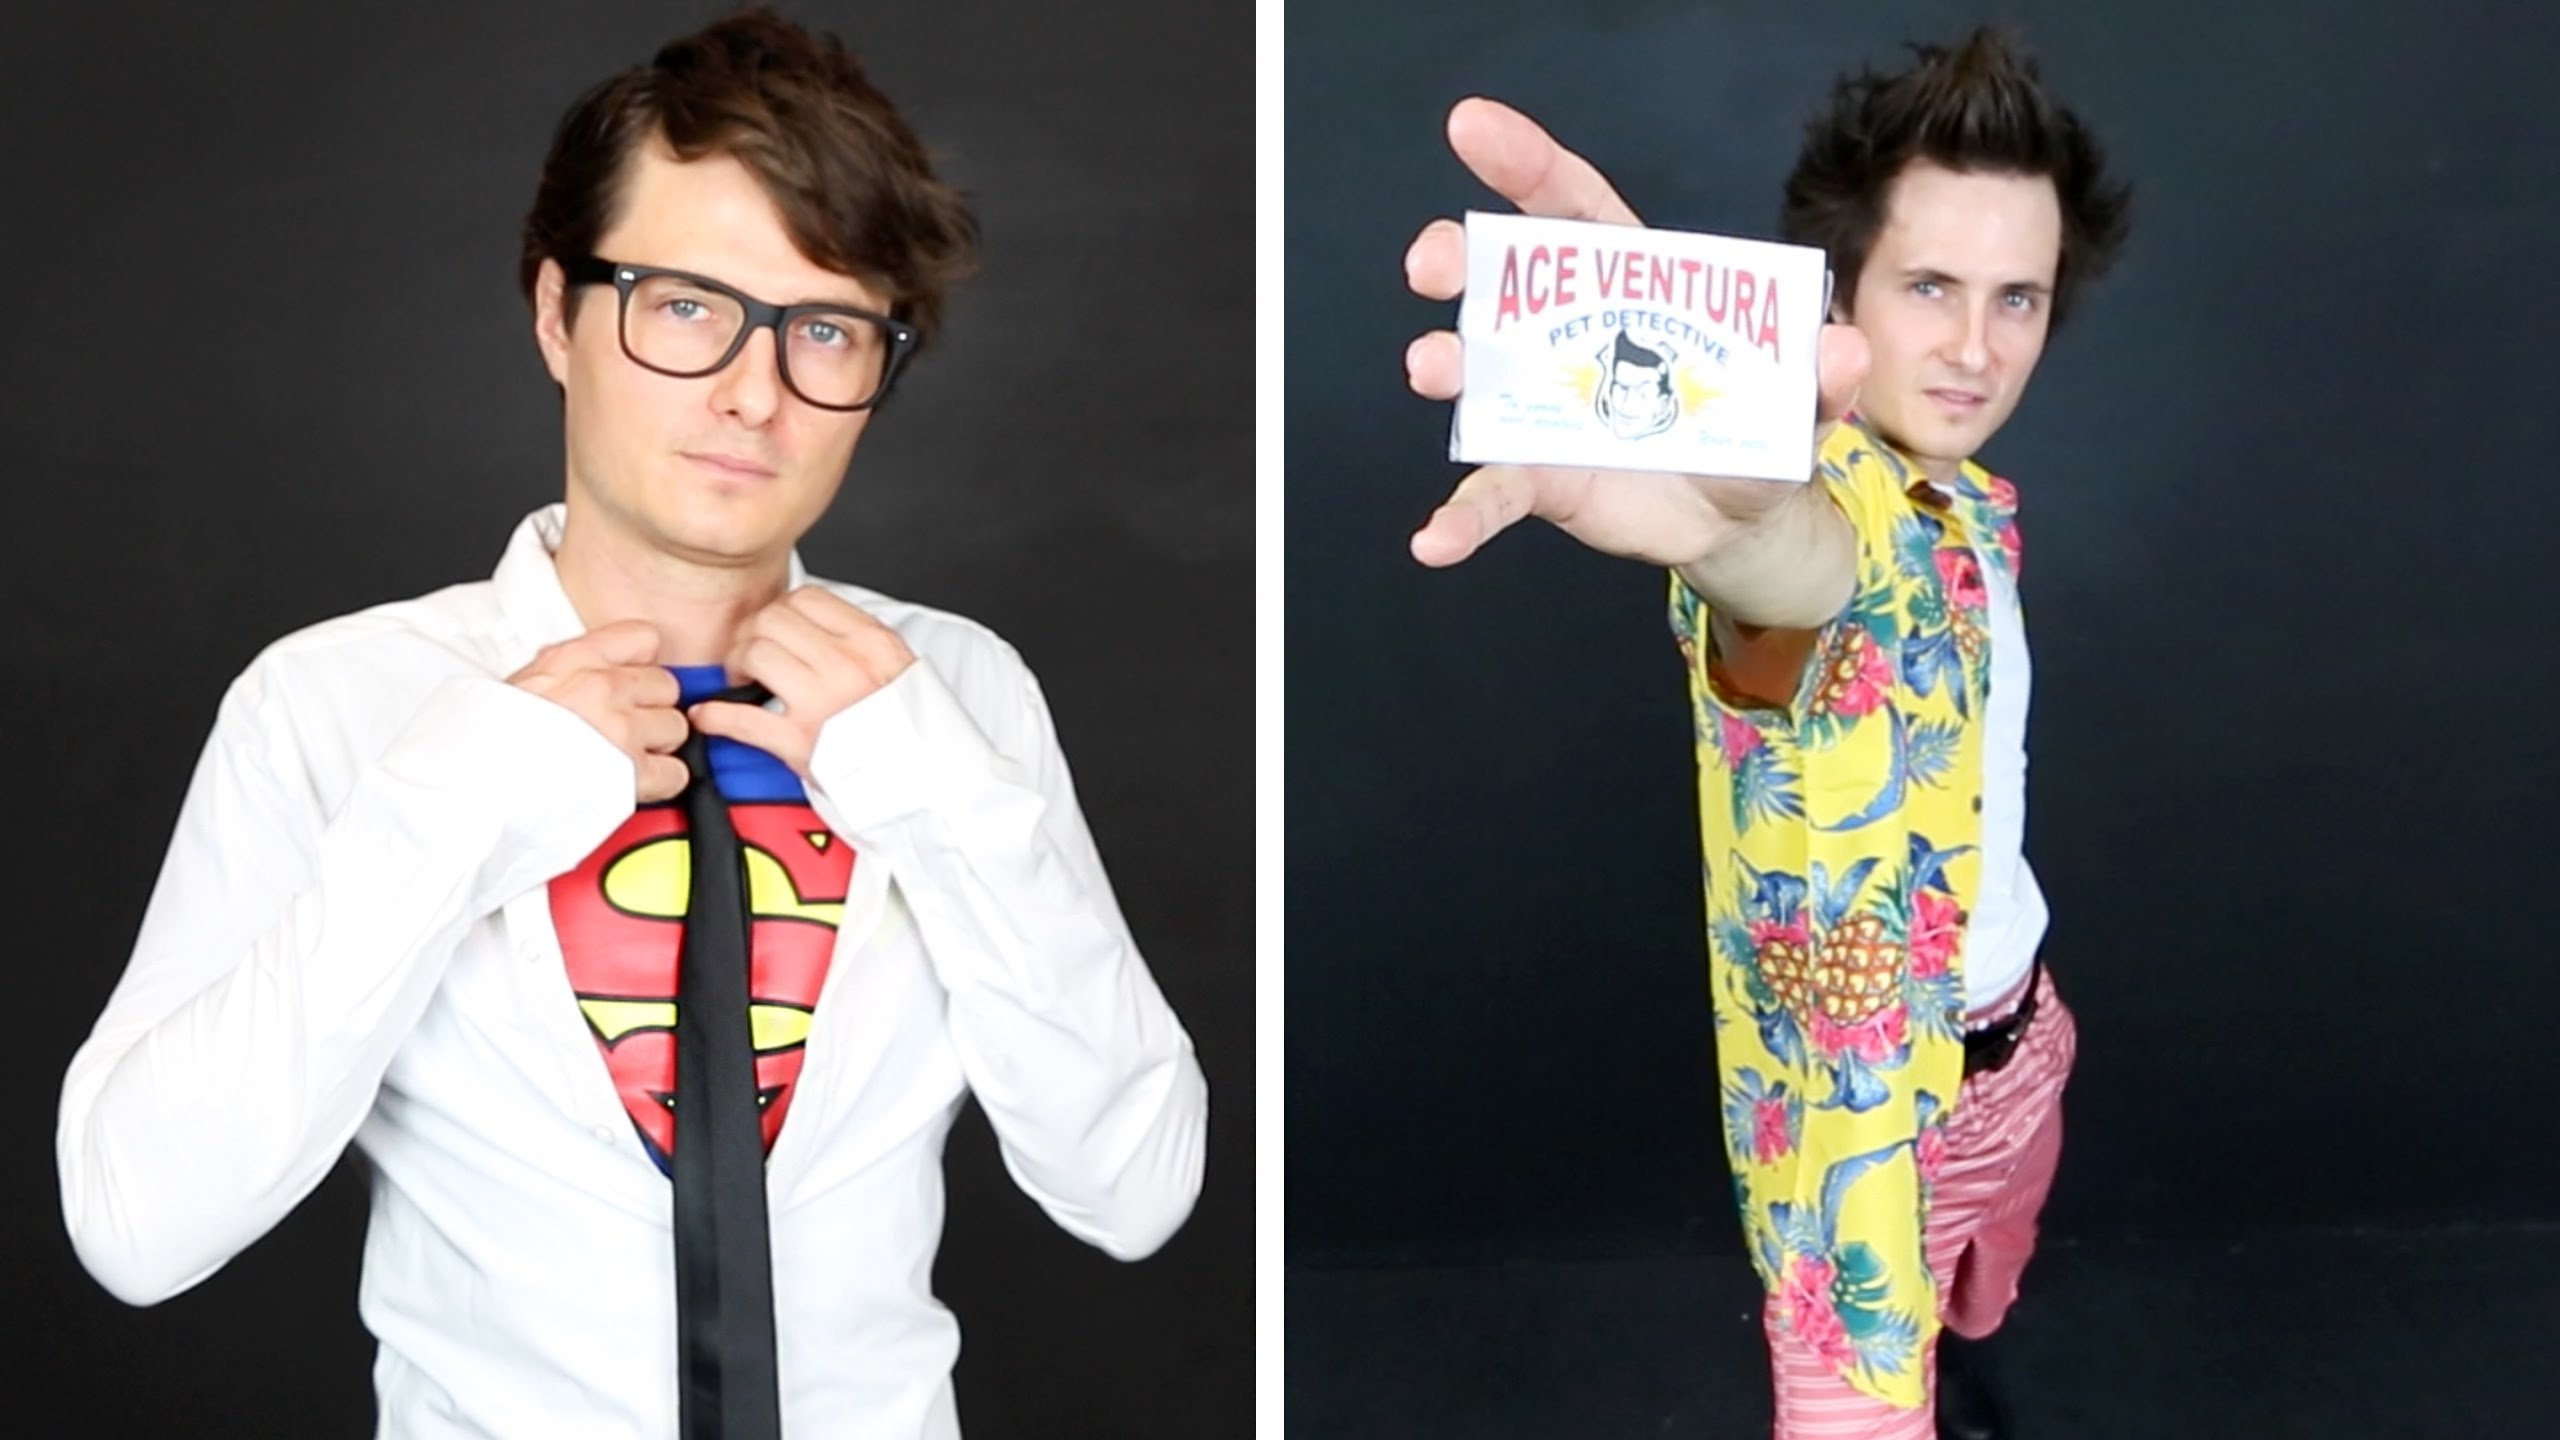 10 Wonderful Quick Costume Ideas For Men last minute easy halloween costumes for guys youtube 9 2021